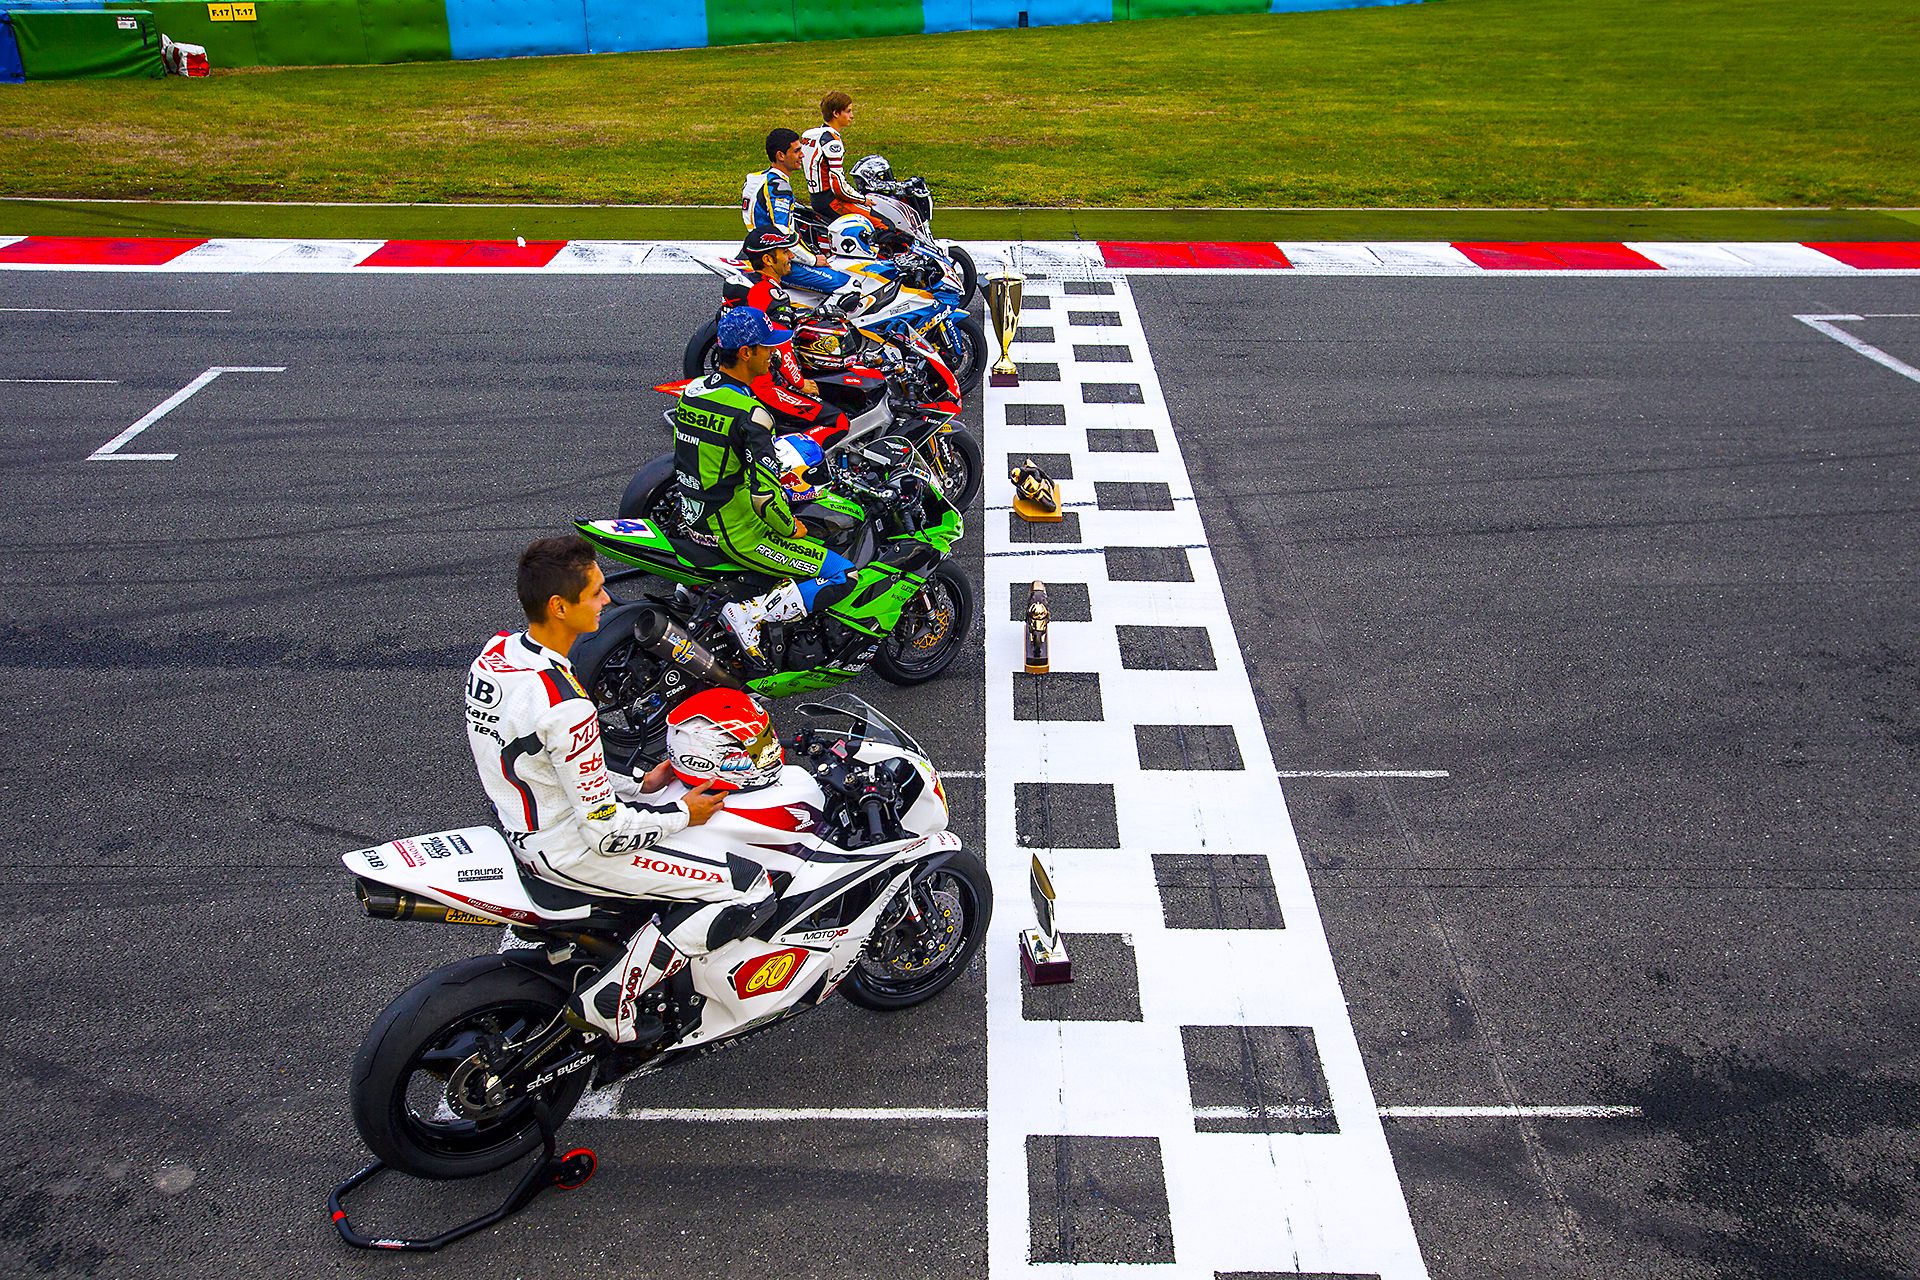 Photograph of all the world champions of the various categories of the World Championship Superbike